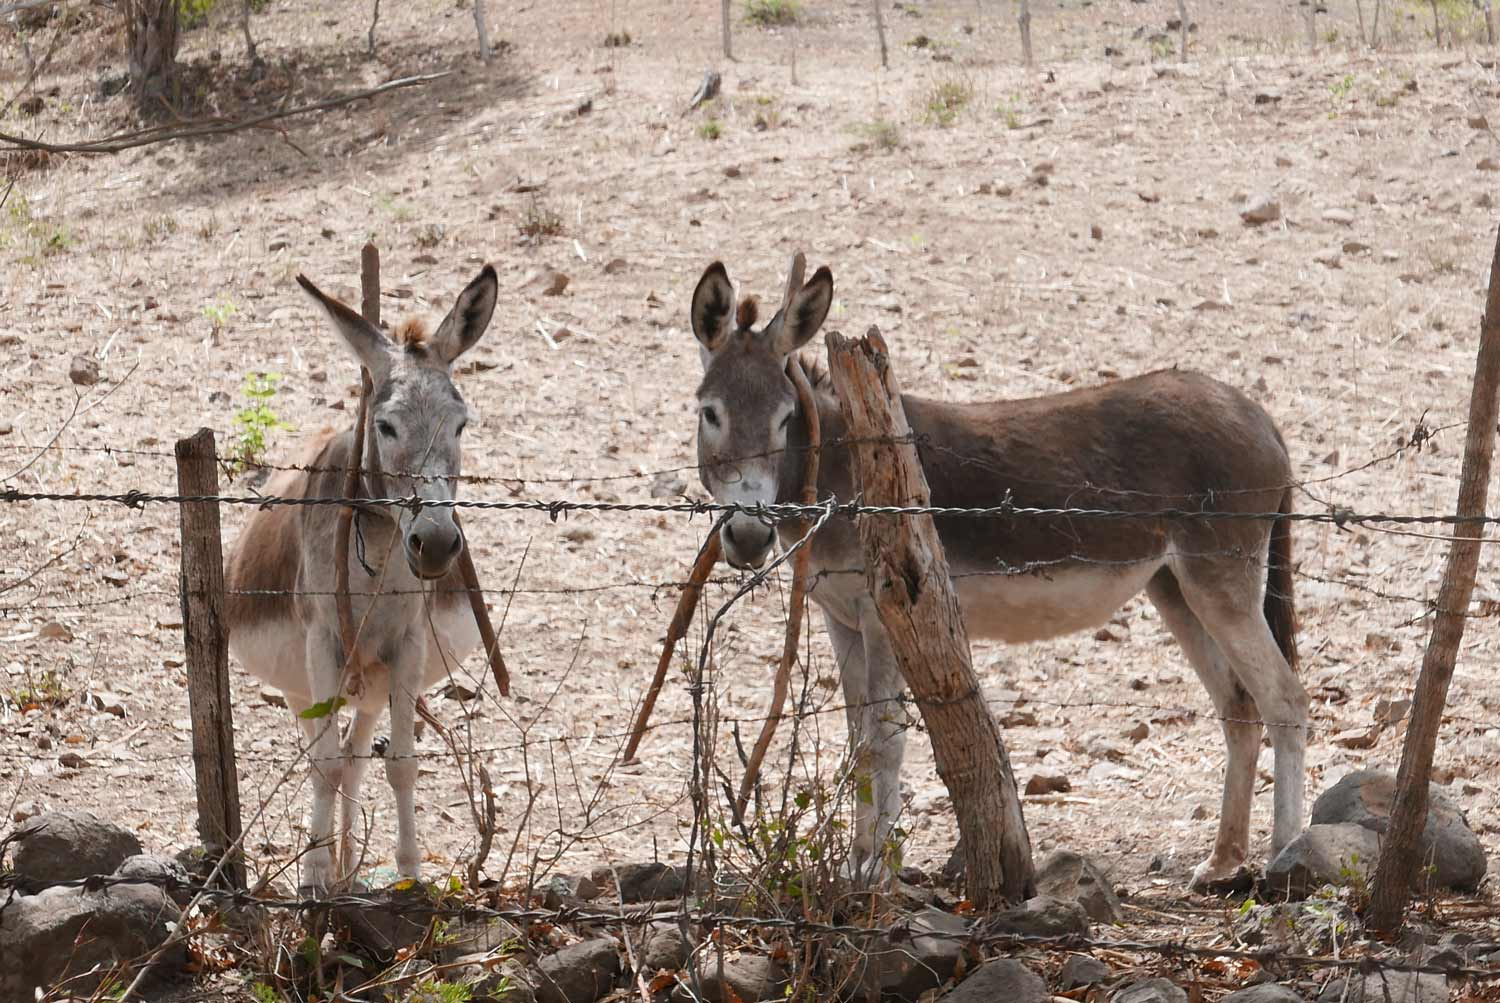 Two donkeys in the valley before entering the rear of Somoto canyon